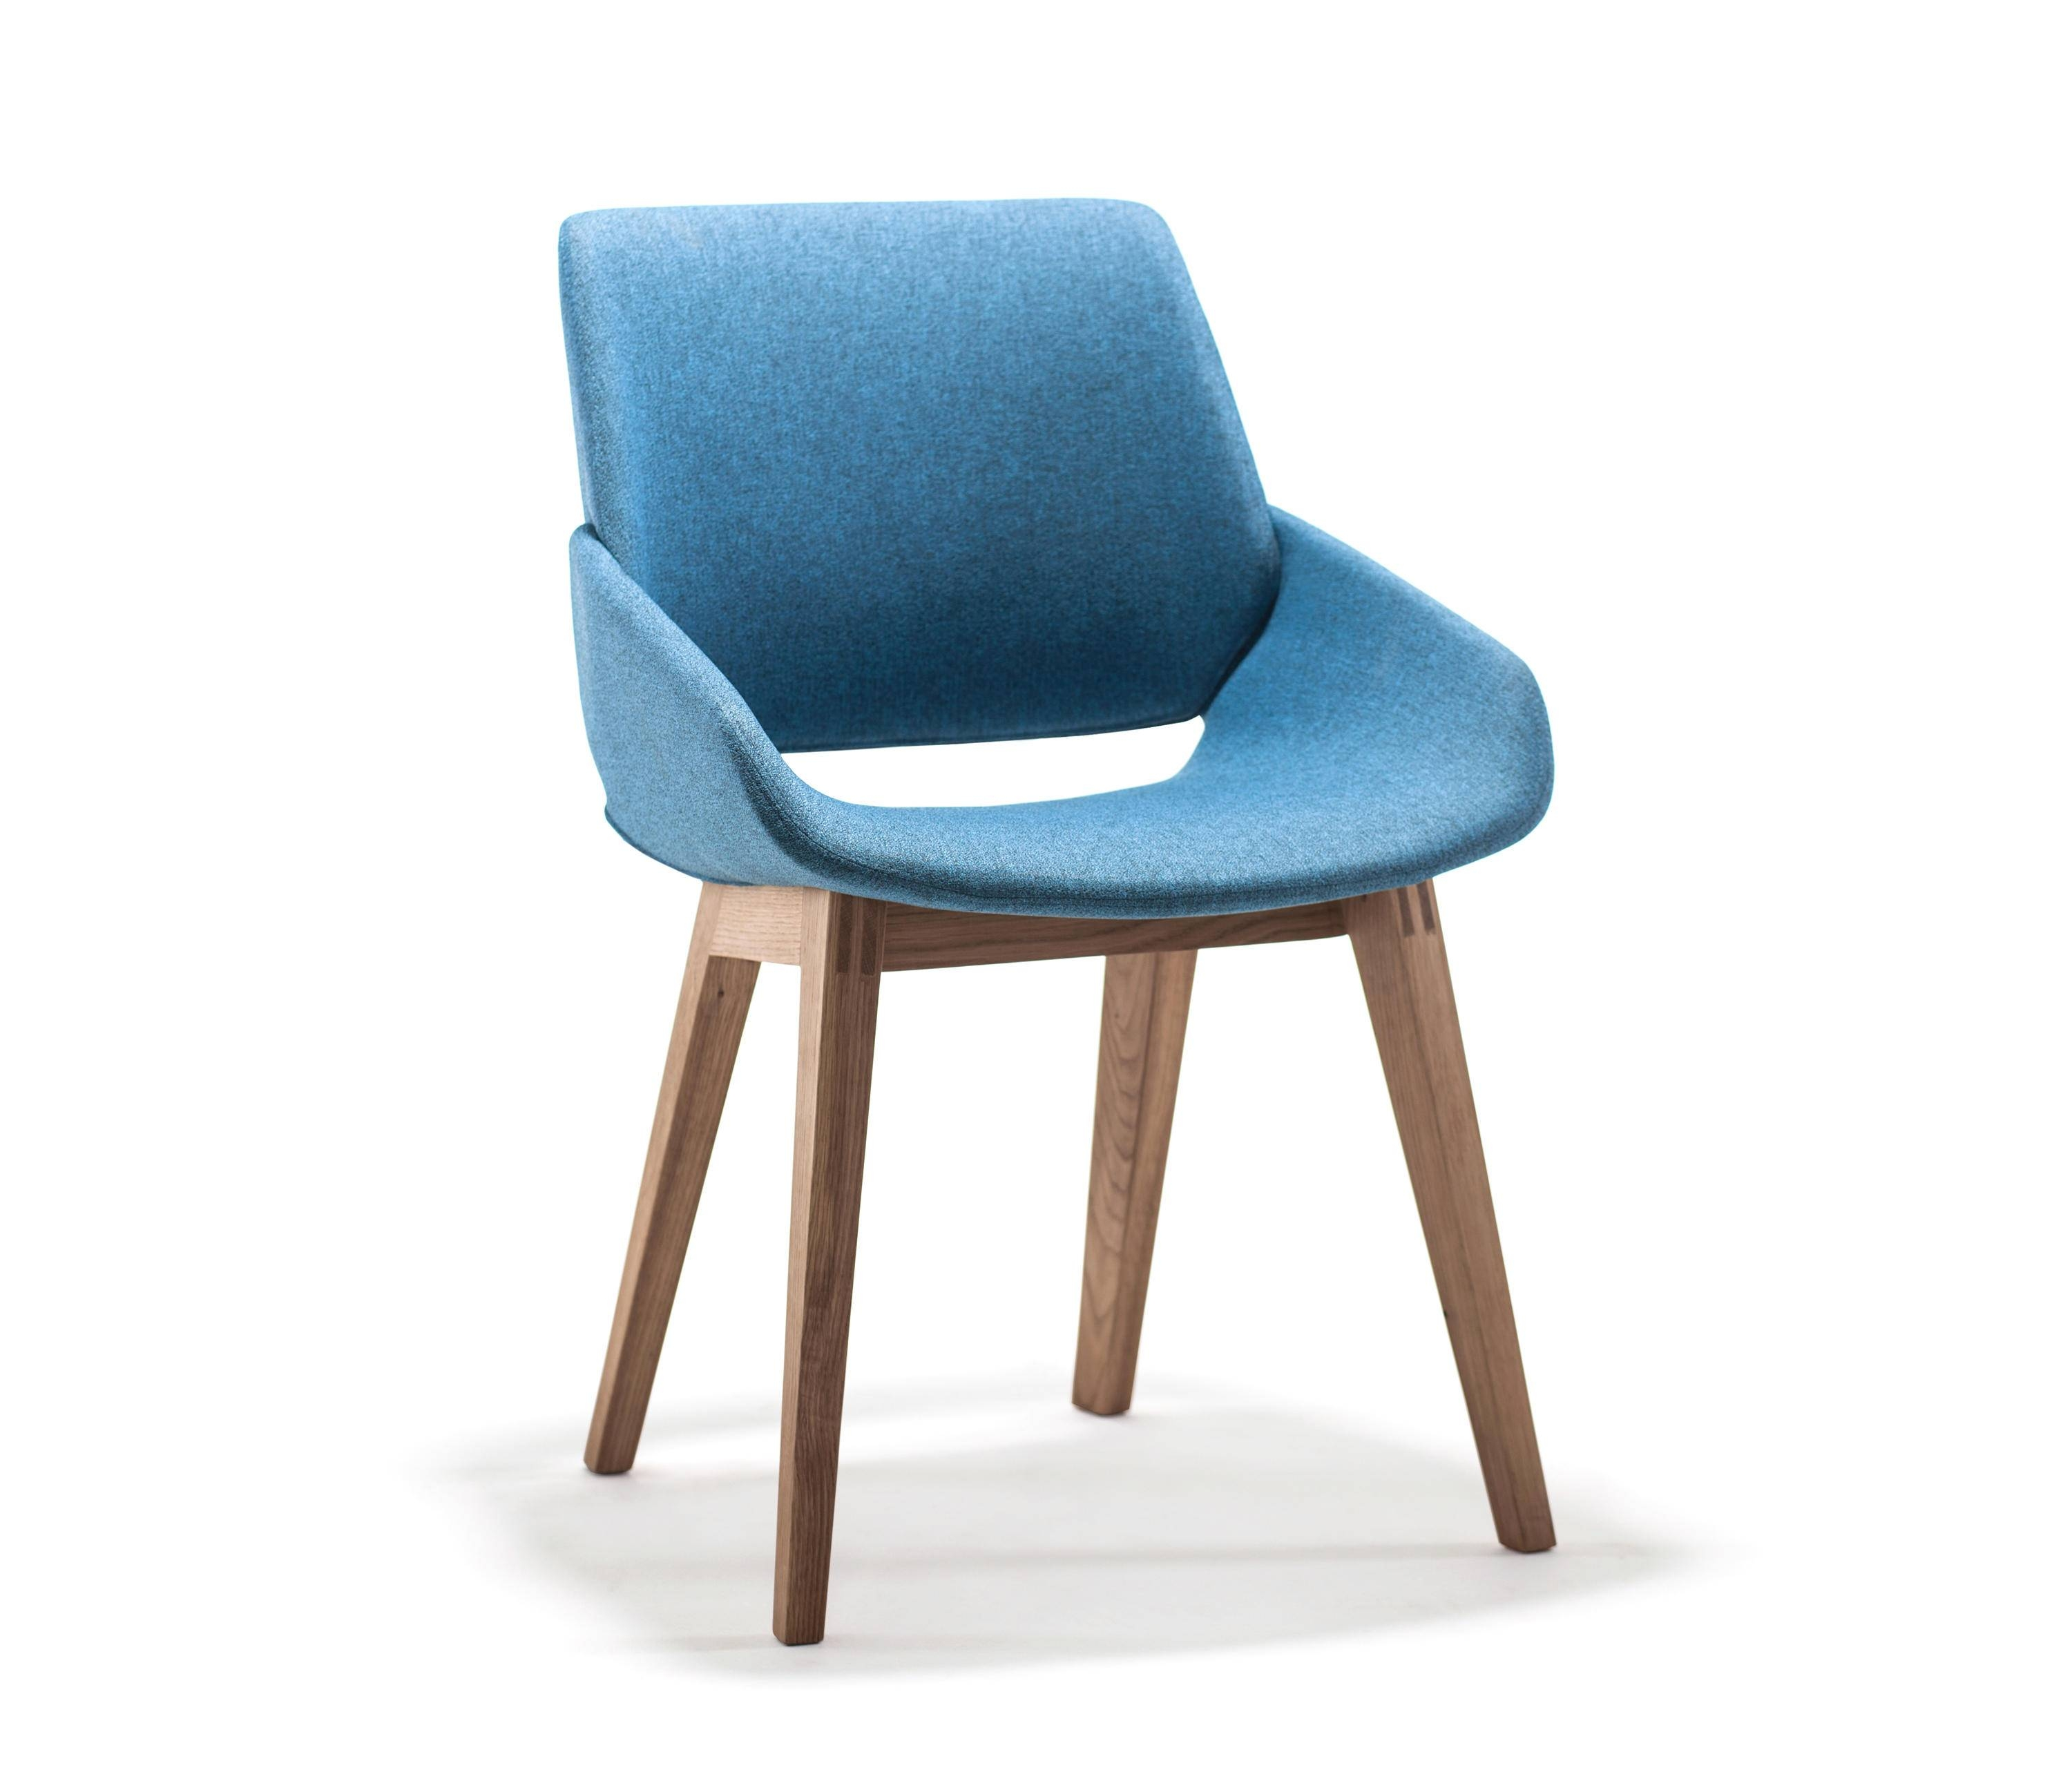 Monk Chair - Visitors Chairs / Side Chairs From Prostoria | Architonic intended for Monk Chairs (Image 13 of 30)